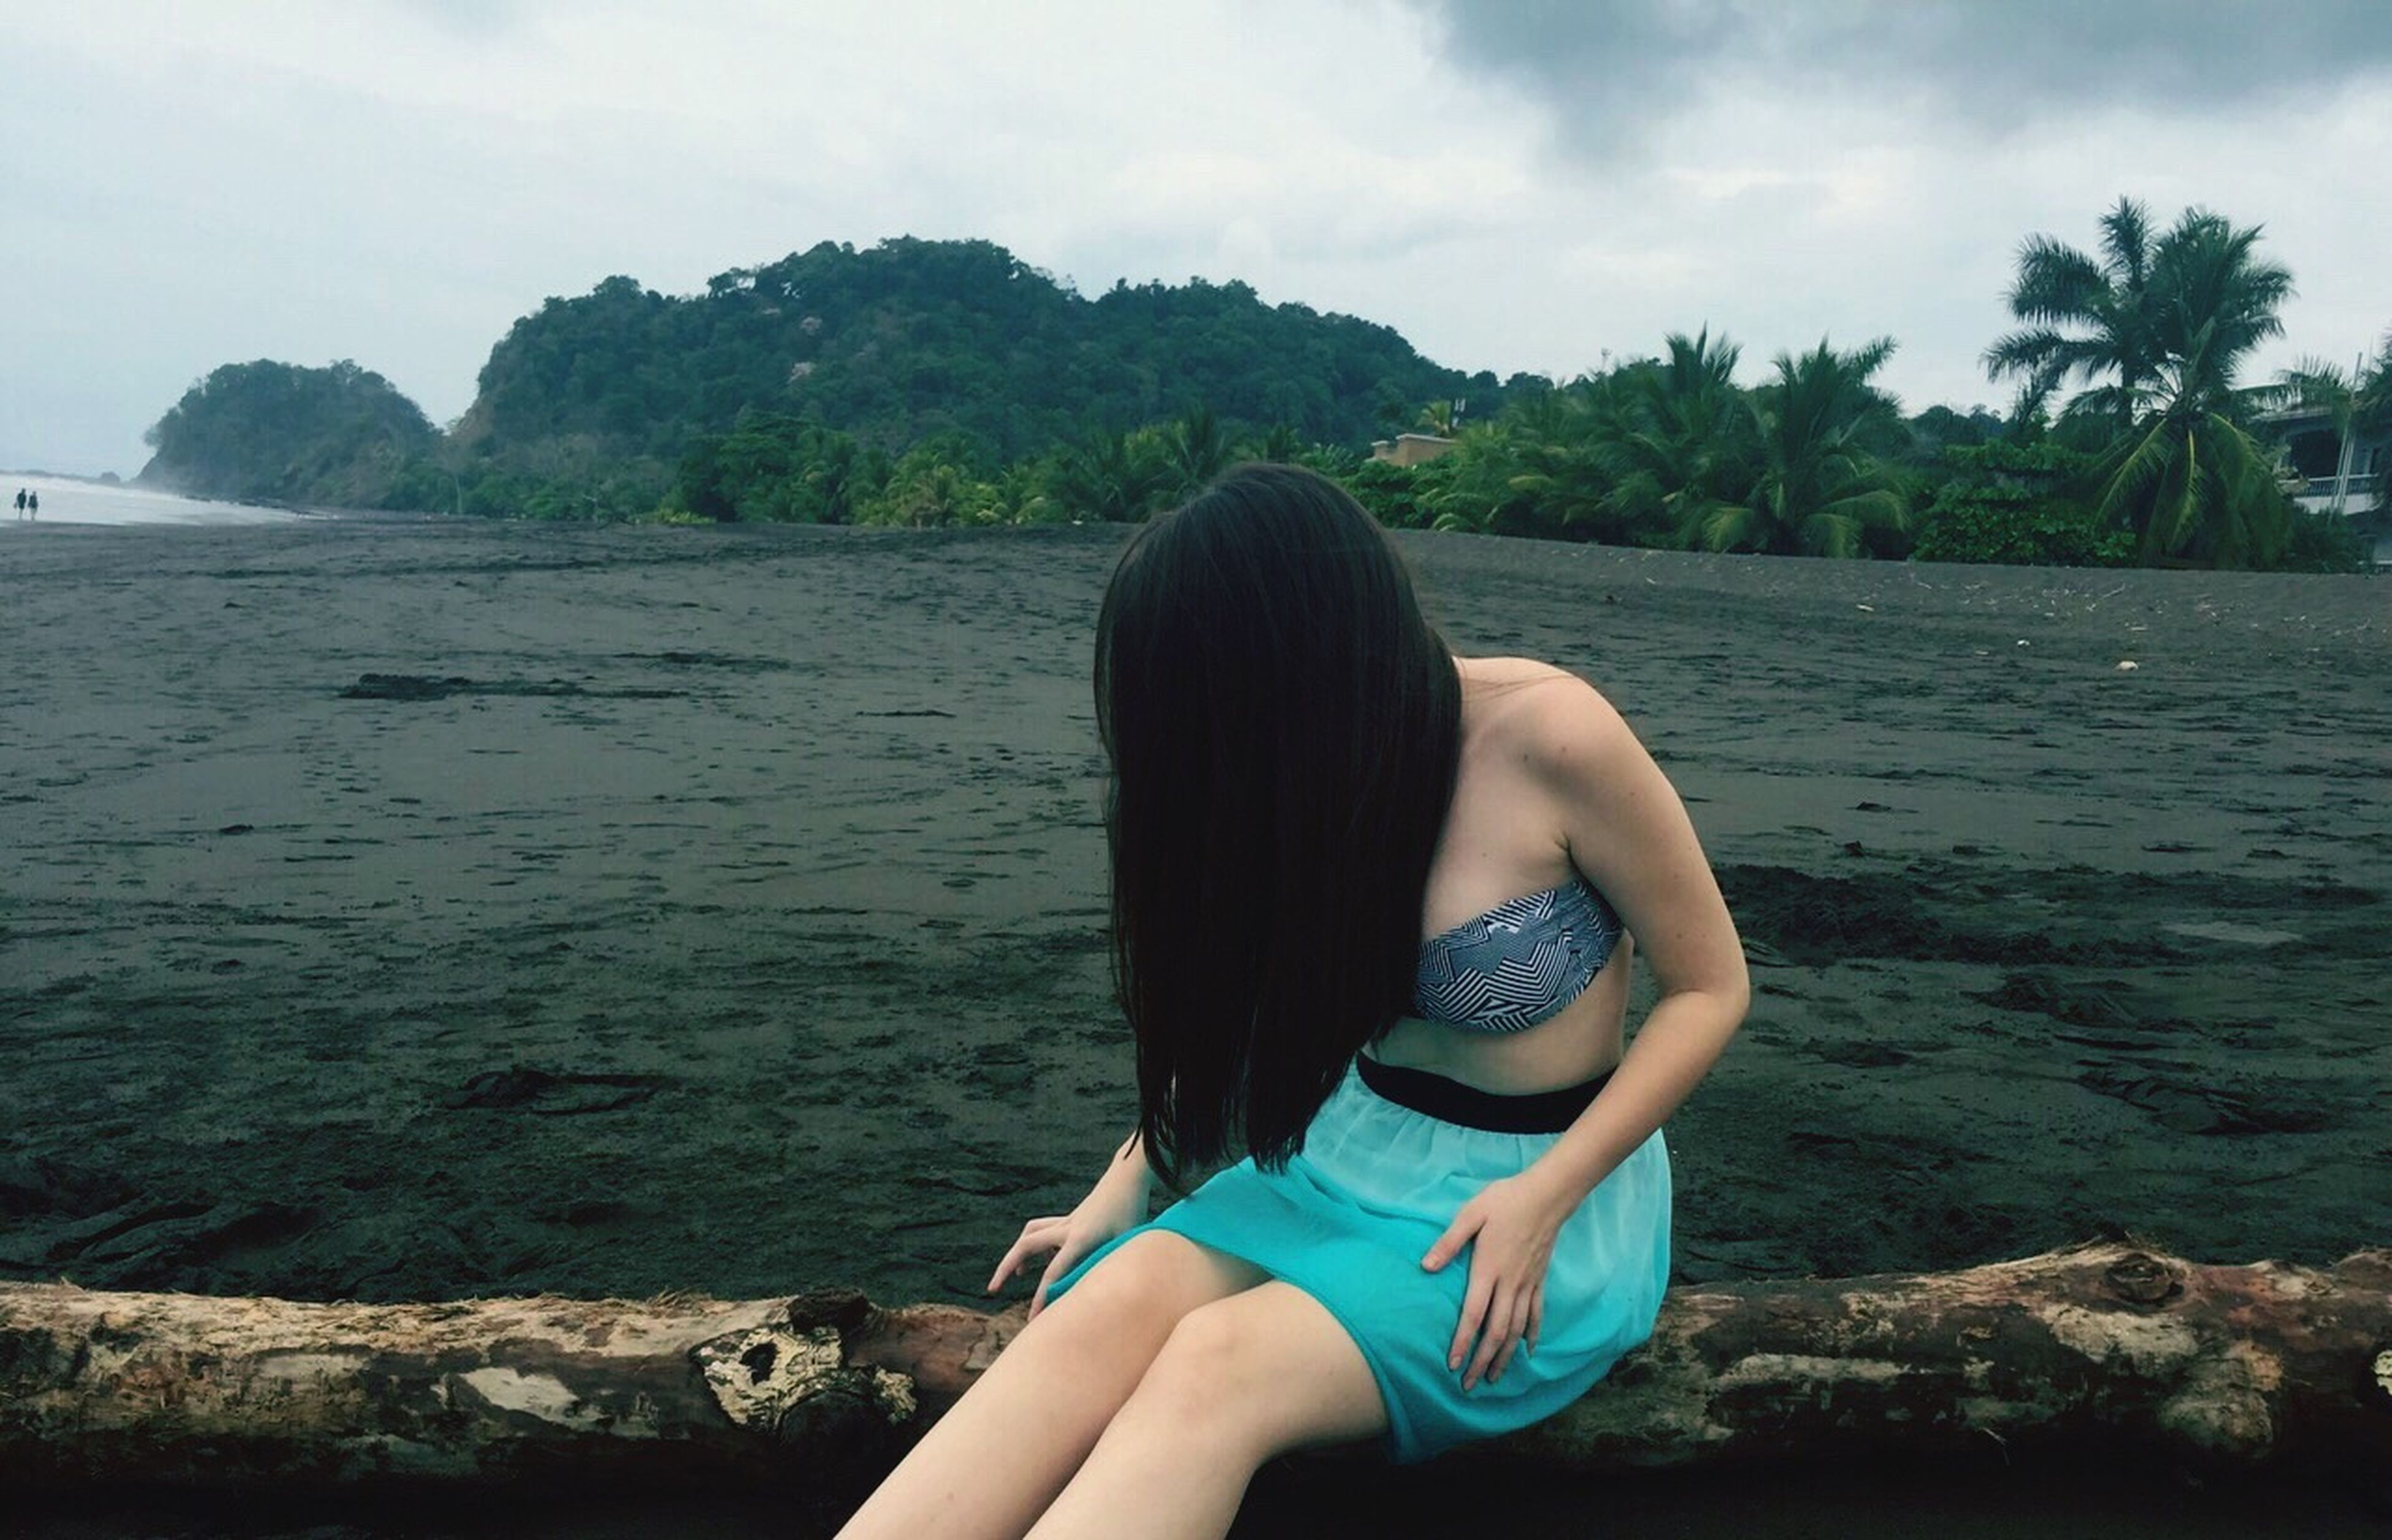 water, sea, sky, lifestyles, leisure activity, person, rear view, beach, tranquility, tranquil scene, tree, long hair, vacations, scenics, relaxation, nature, beauty in nature, young women